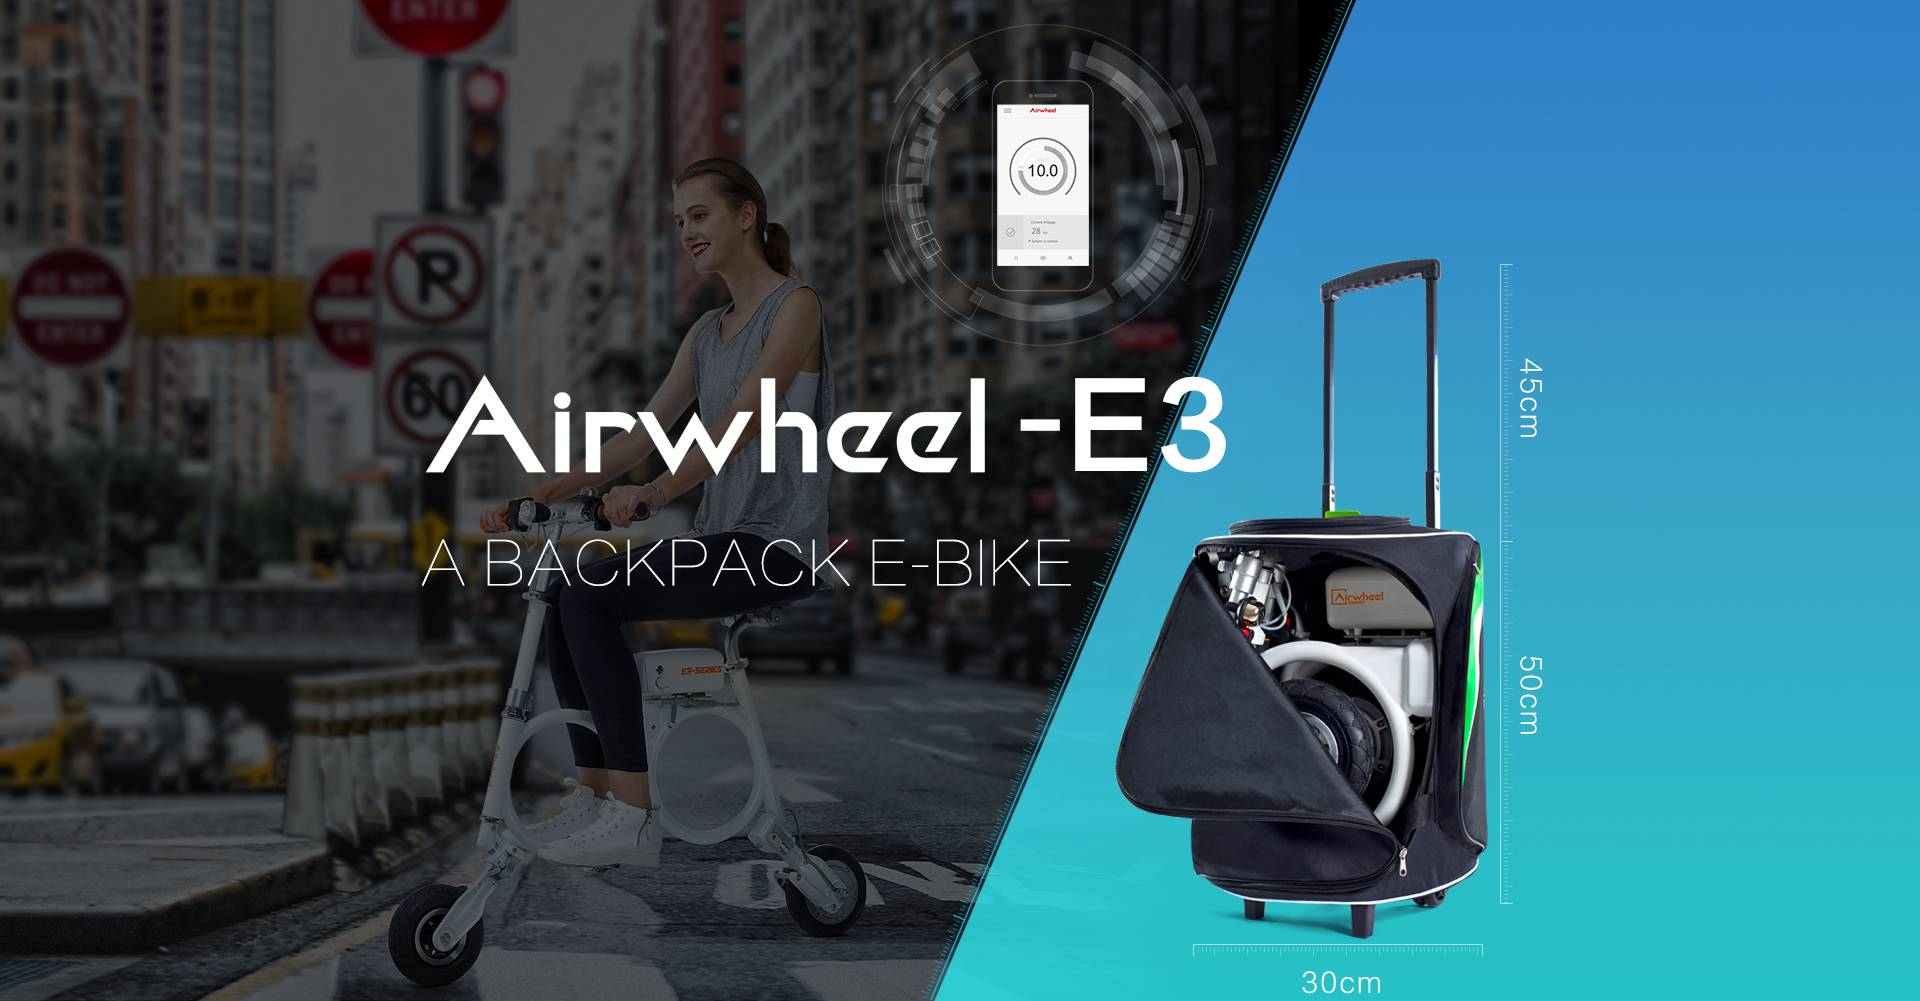 Airwheel best folding electric bicycle E3